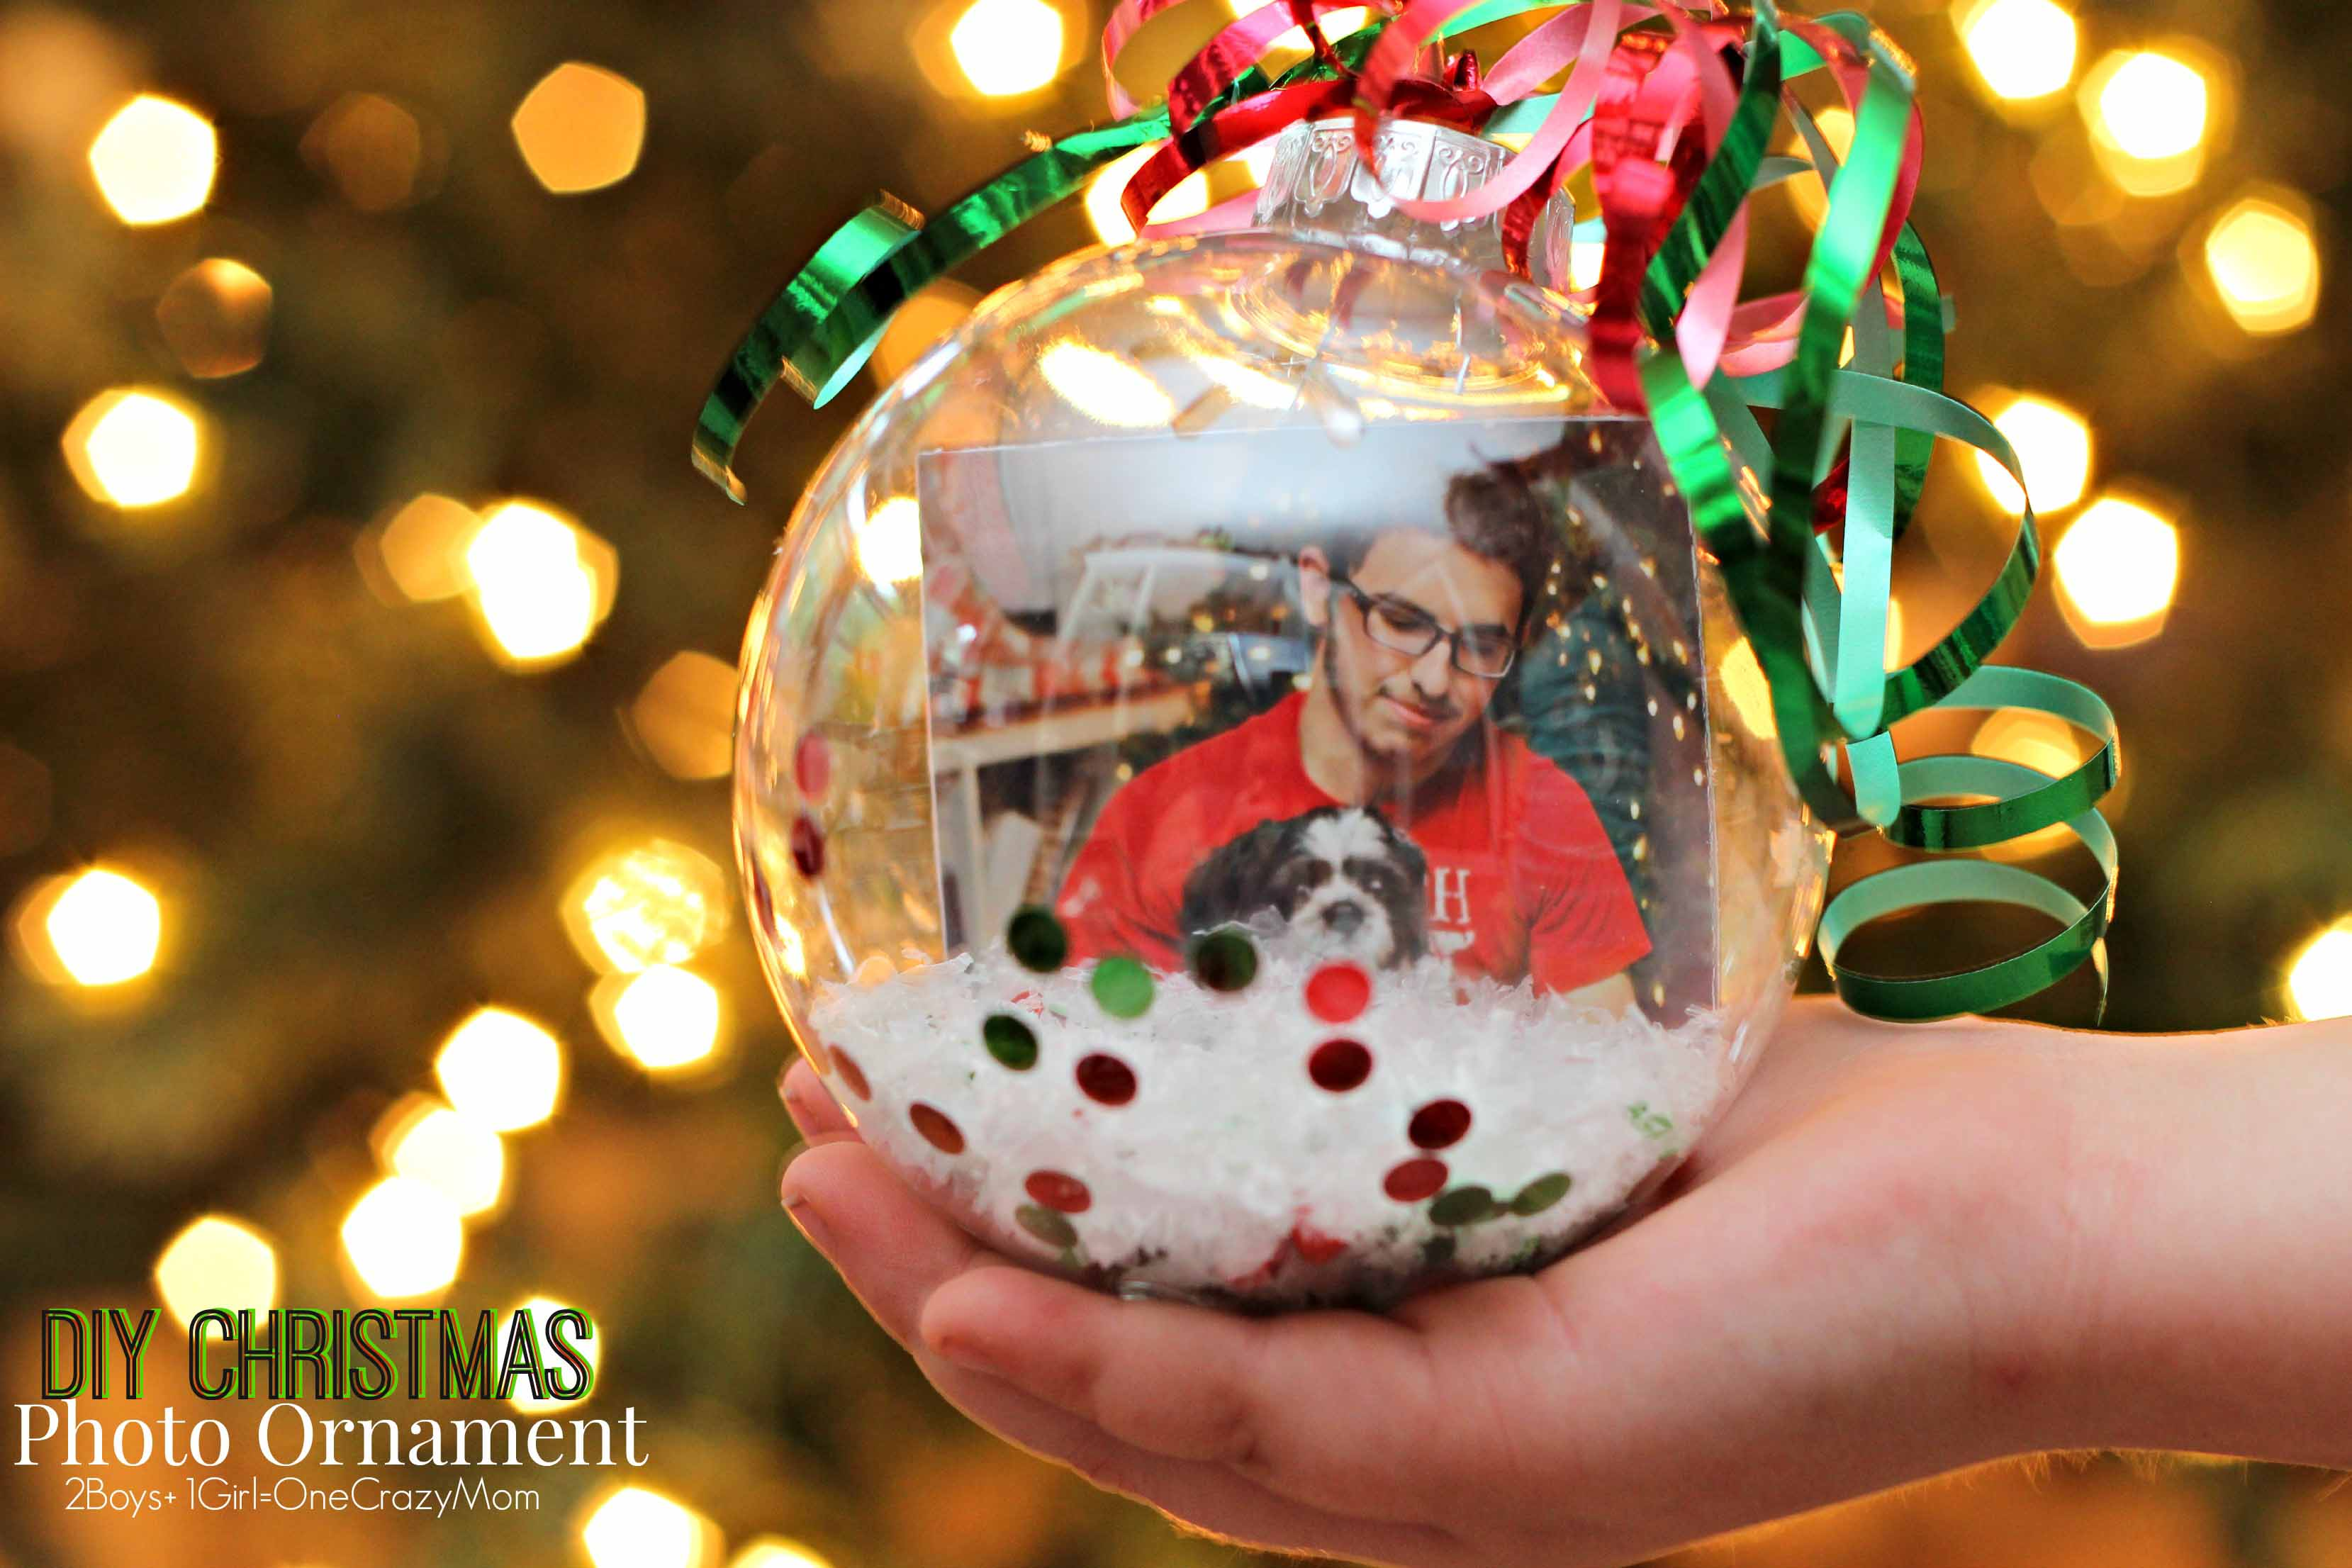 Diy christmas photo ornaments are the perfect gift idea How to make your own ornaments ideas